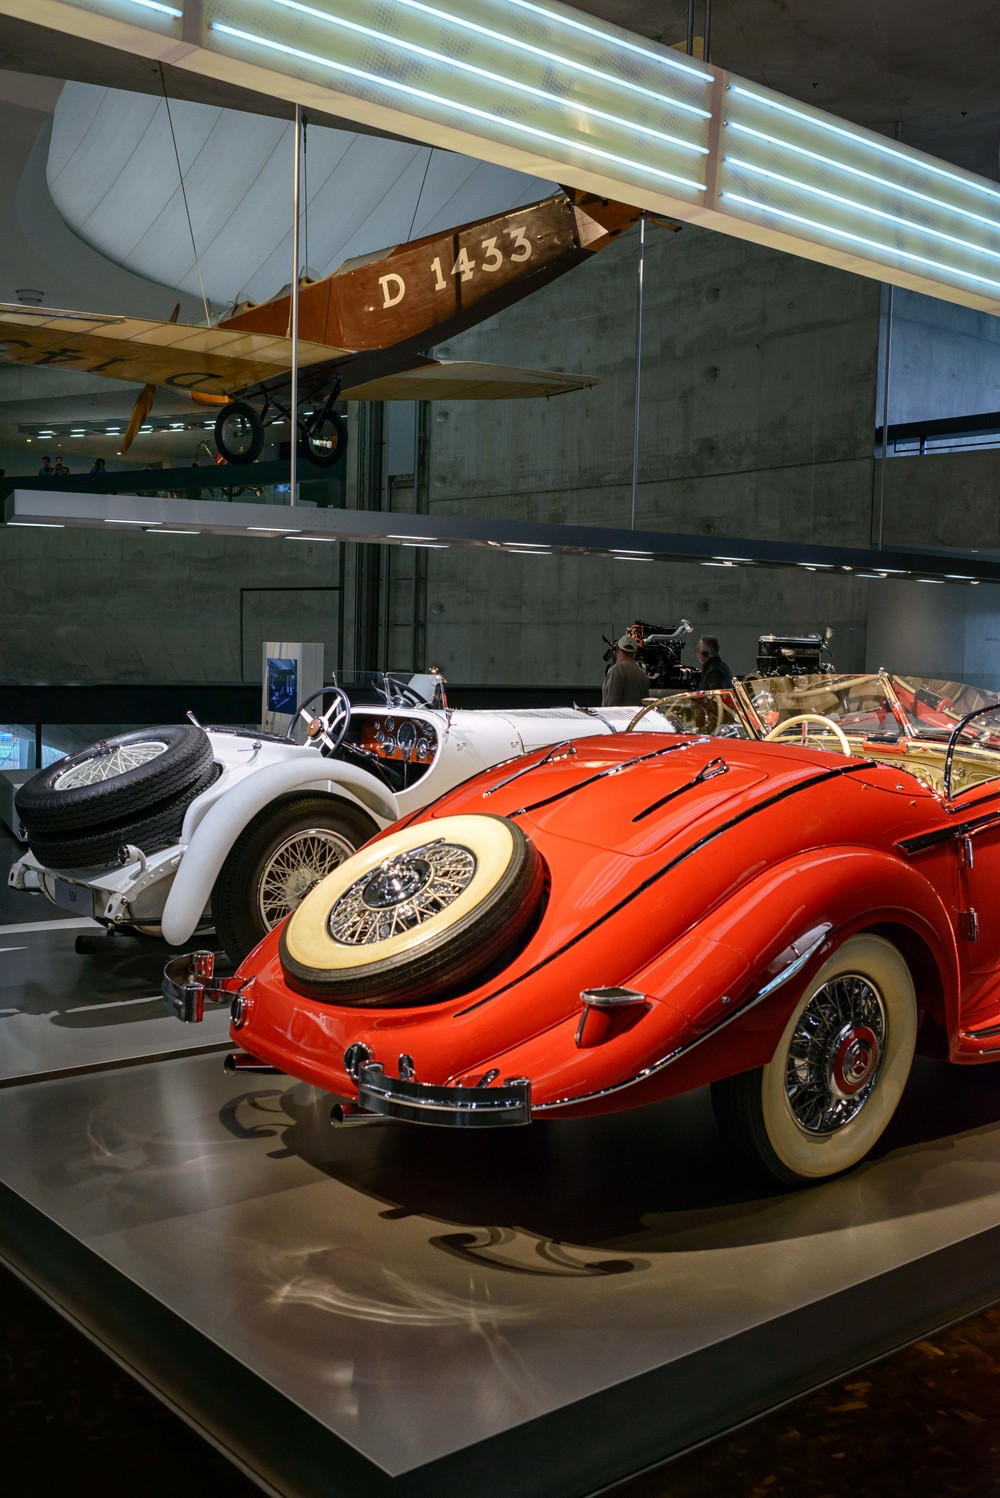 Mercedes-Benz 500 K special roadster.   The Mercedes-Benz 500 K was the car of the rich and the beautiful. Together with the representative Grand Mercedes, the elegant 500 K sports car was the brand's show-piece in the 1930s.